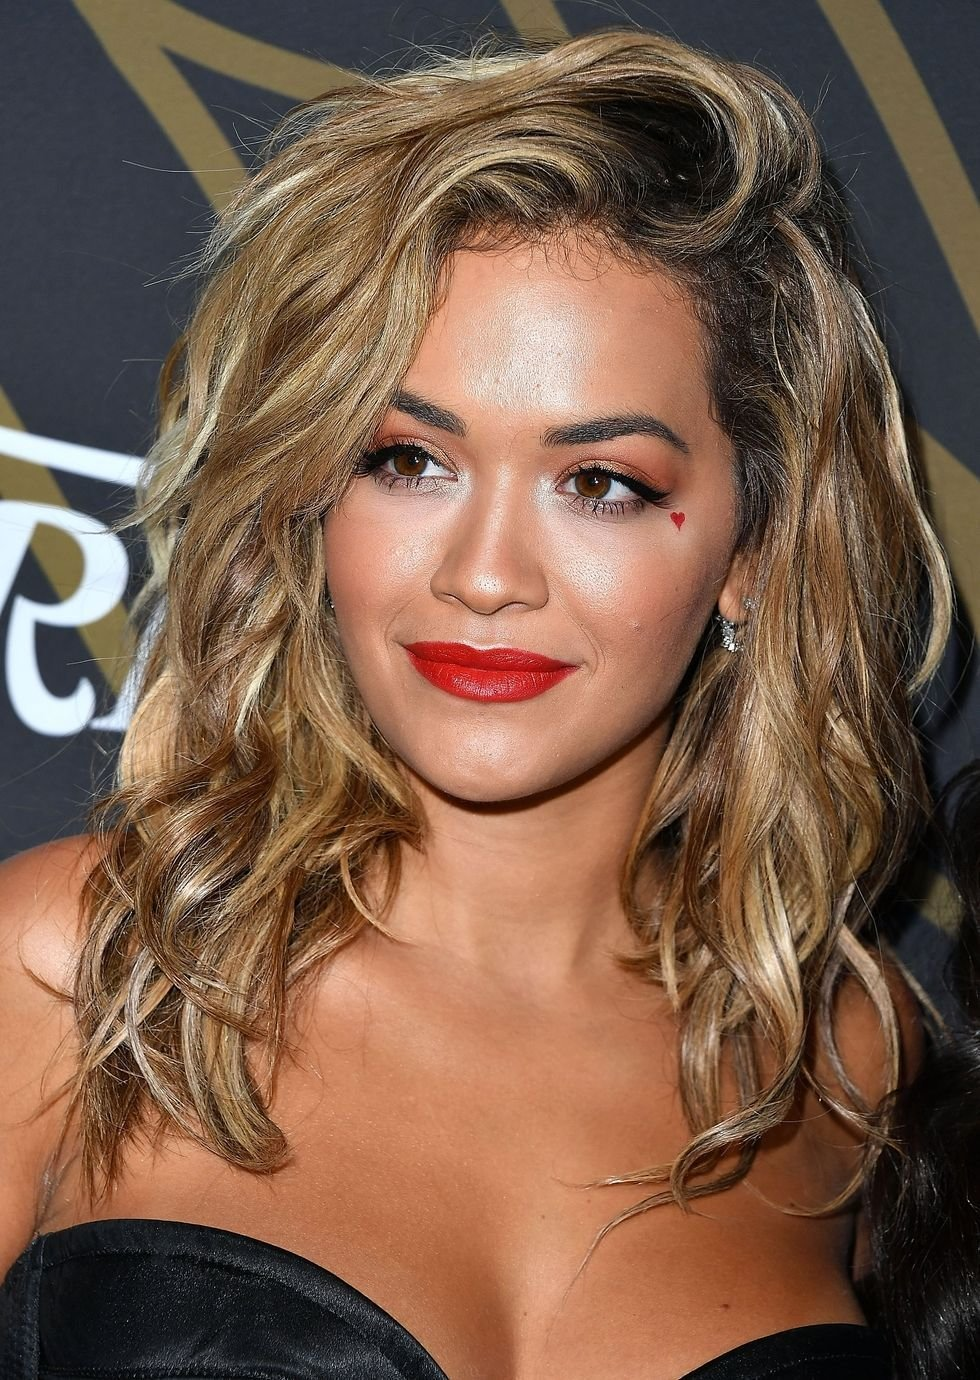 The Best 50 Of The Best Blonde Hair Ideas Hair I Want Rita Ora Pictures